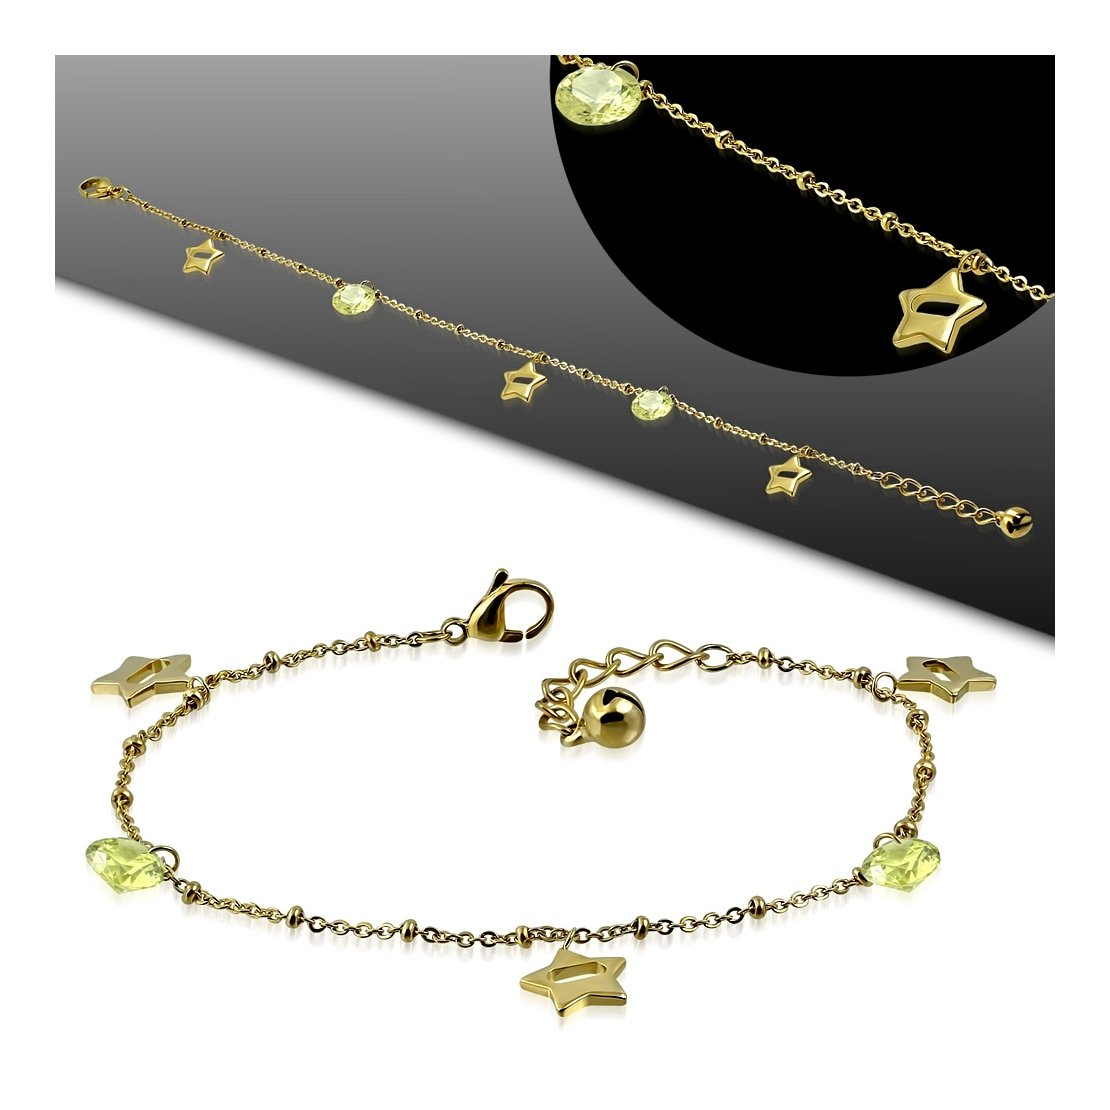 Stainless Steel Gold Color Plated Cut-out Star Charm Bracelet// Anklet with Extender Chain /& Peridot CZ